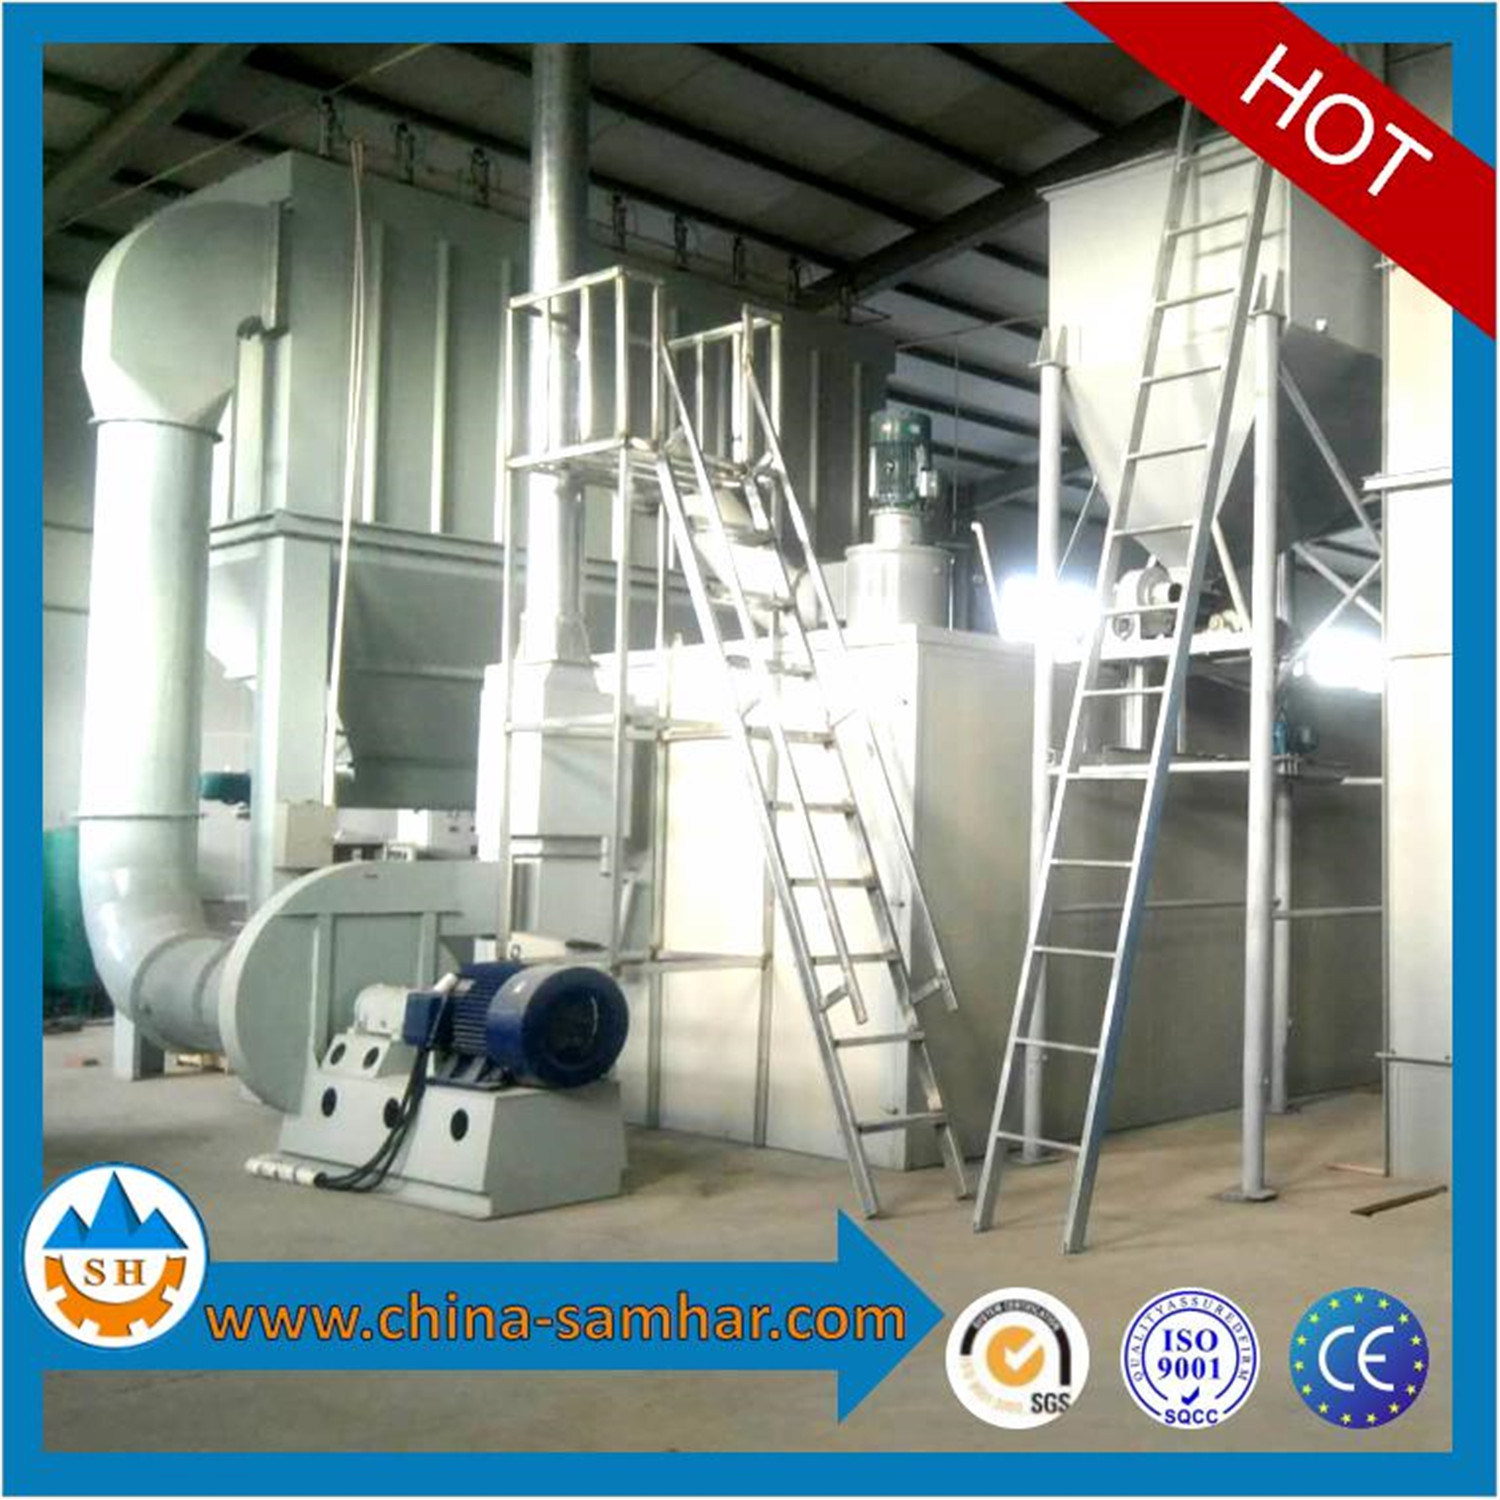 China Mining Equipments For Calcium Carbonatetalcbarite Powder